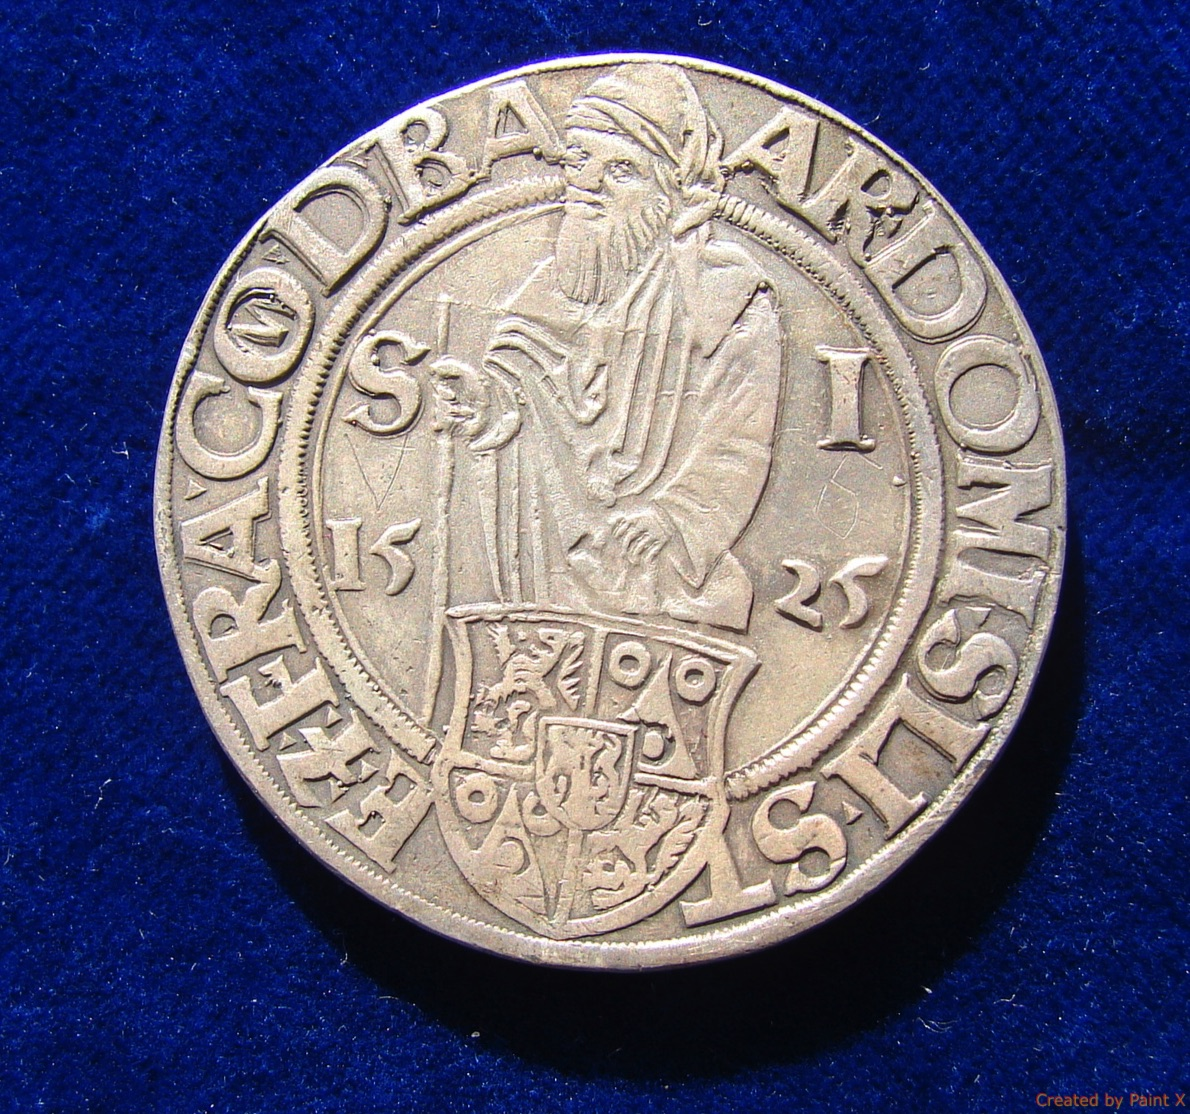 A Thaler coin, circa 16th century (Wikipedia)